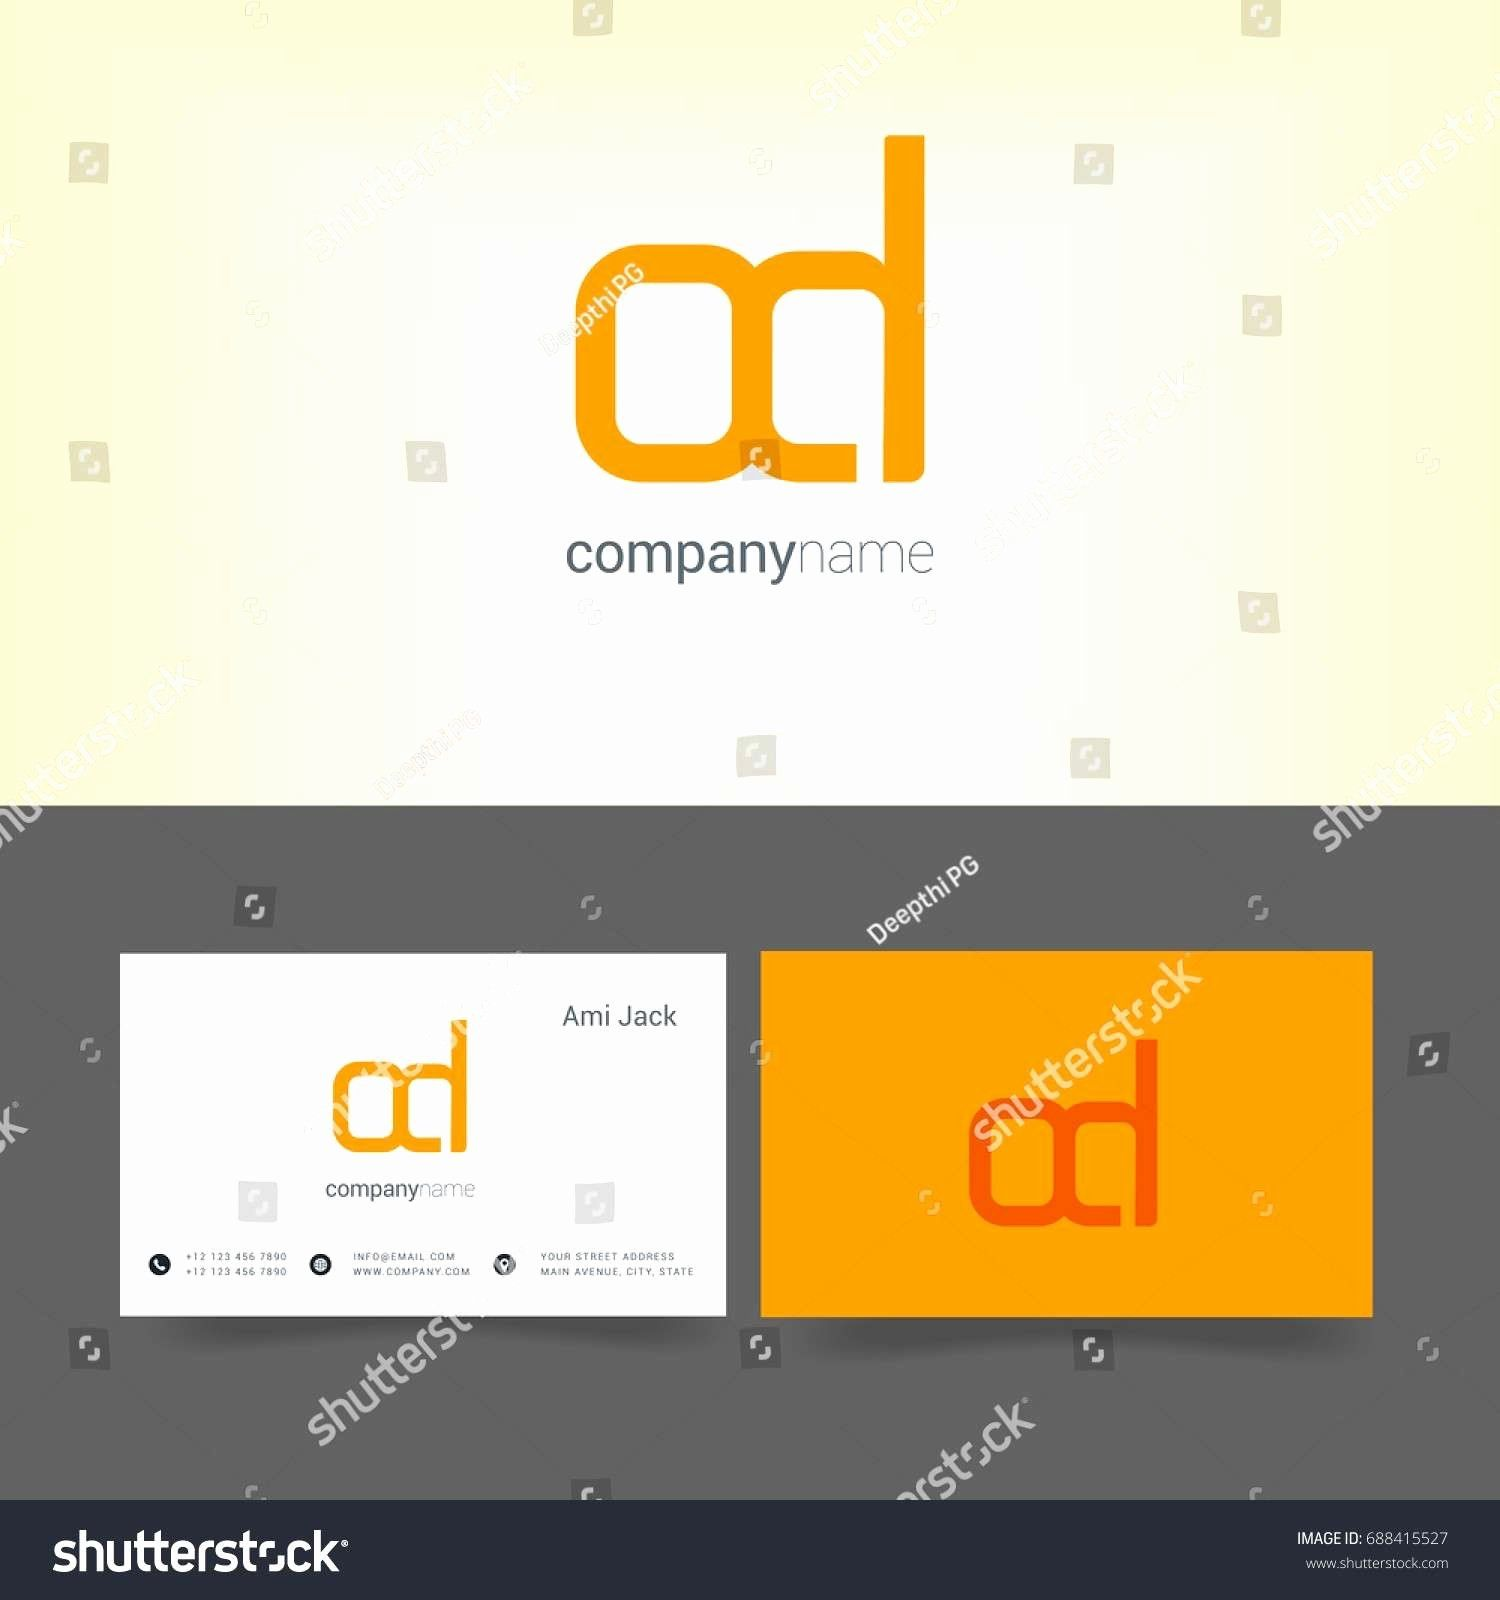 Avery 8875 Business Cards Templates Lovely Avery Business Cards Templates Caquetap Free Business Card Templates Free Vector Business Cards Avery Business Cards